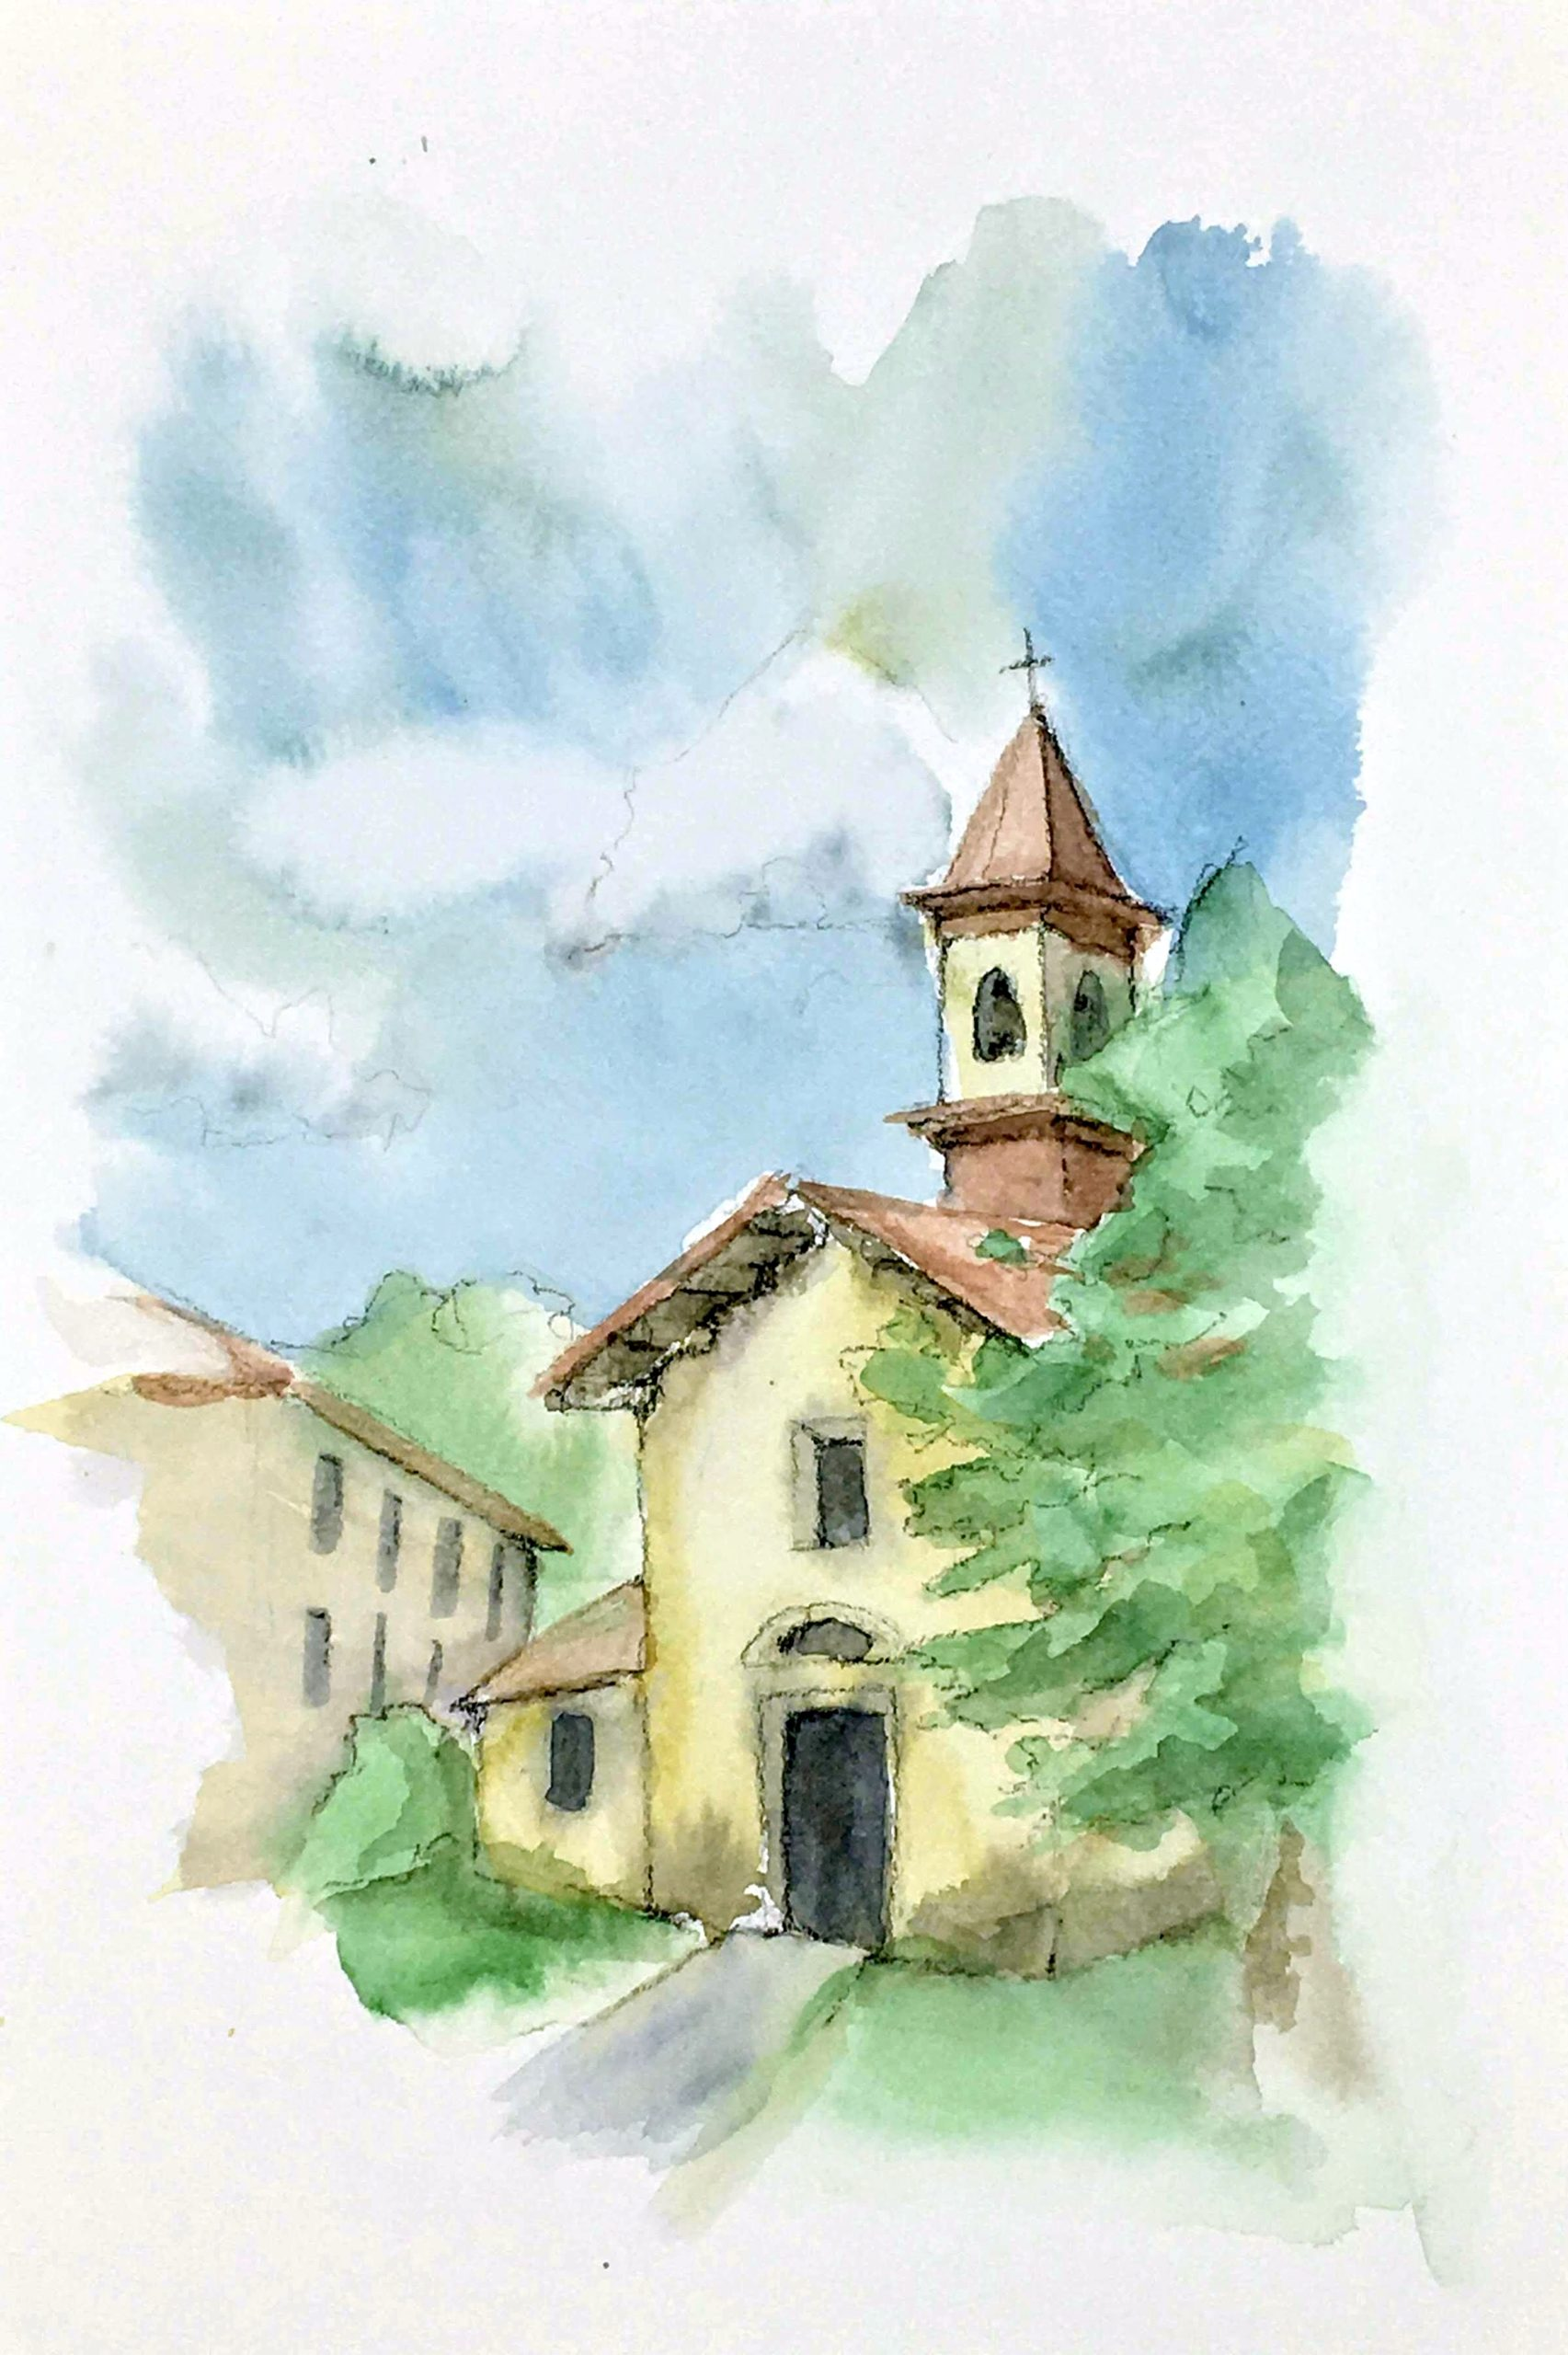 Painting of the Church of Sant'Eusebio in Cinisello